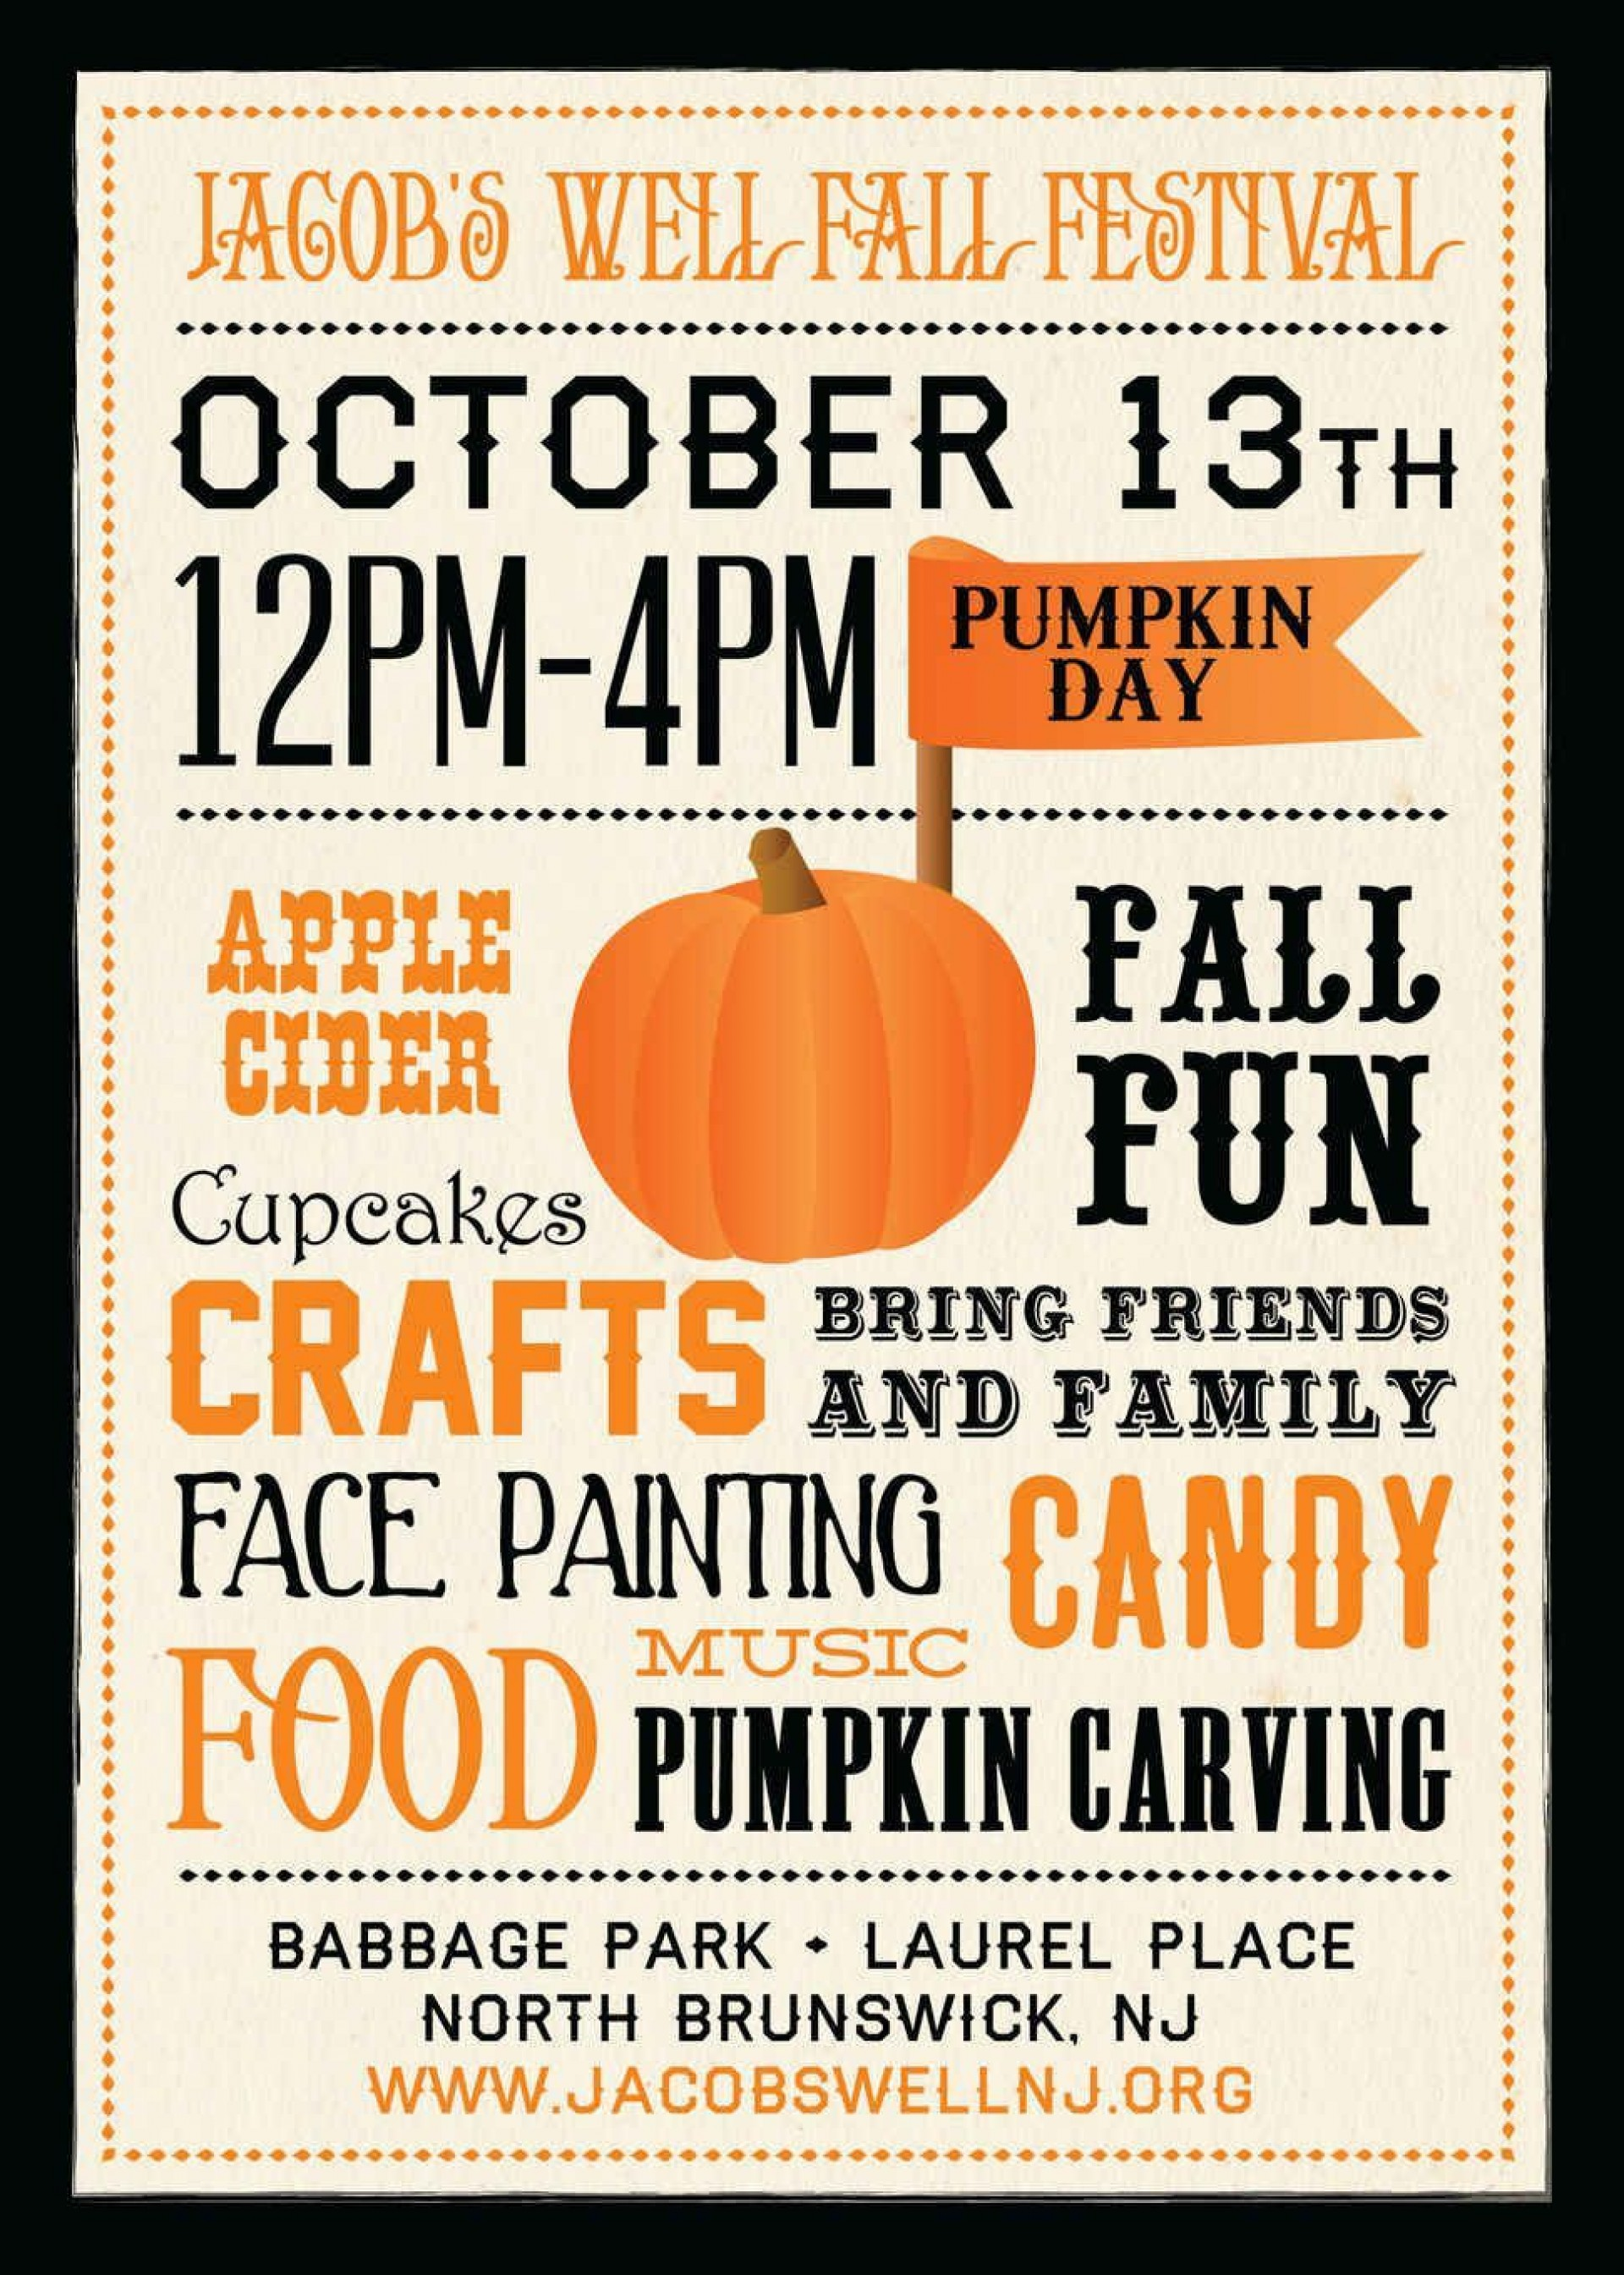 002 Simple Fall Festival Flyer Template Inspiration  Free1920